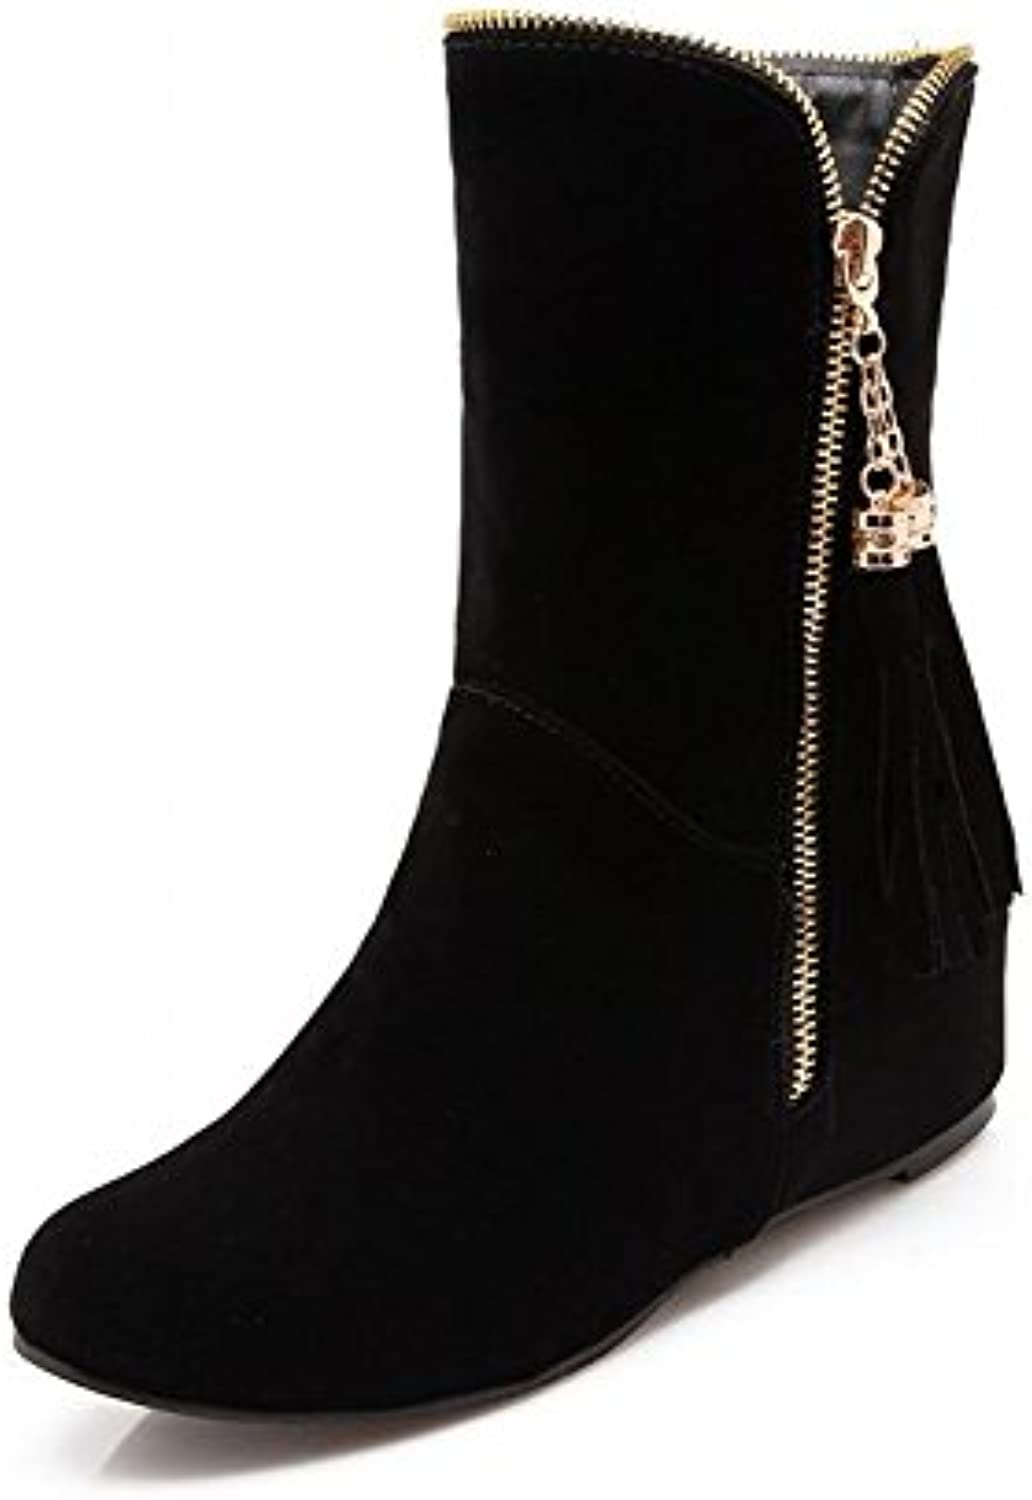 Beauqueen Estudiante Winter Warm Botines Flat Heel Cosy Comfortable Shoes Zip-up Antideslizante Zapatos (Color...